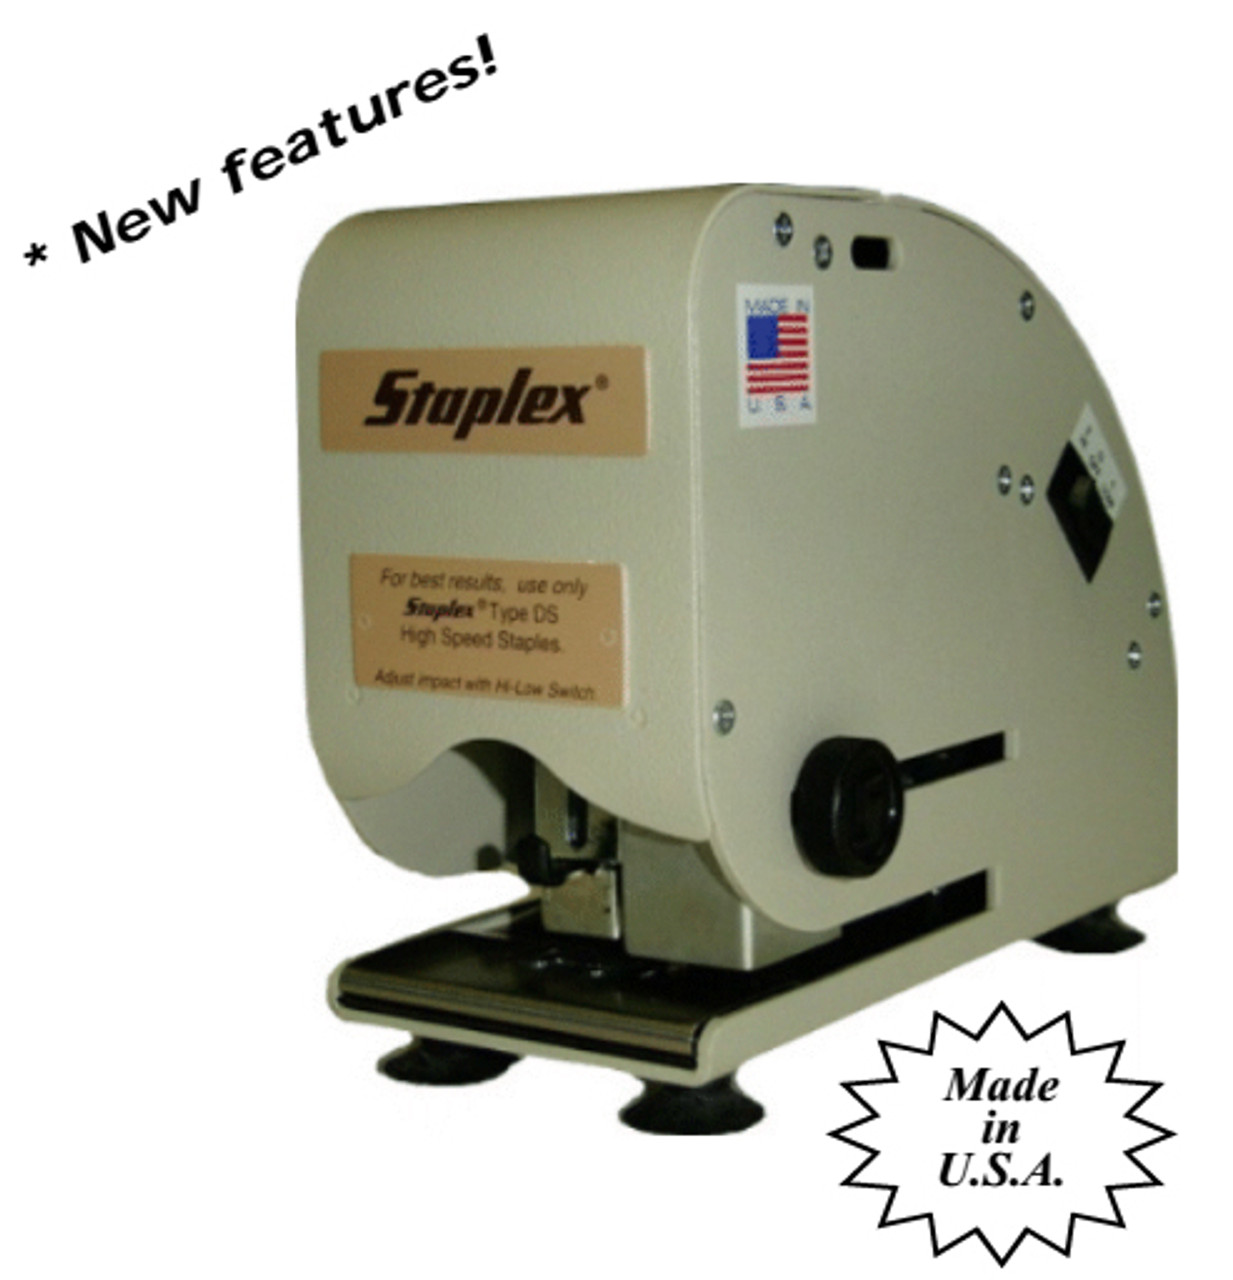 Staplex® Model SJM-1N Little Giant Electric Stapler